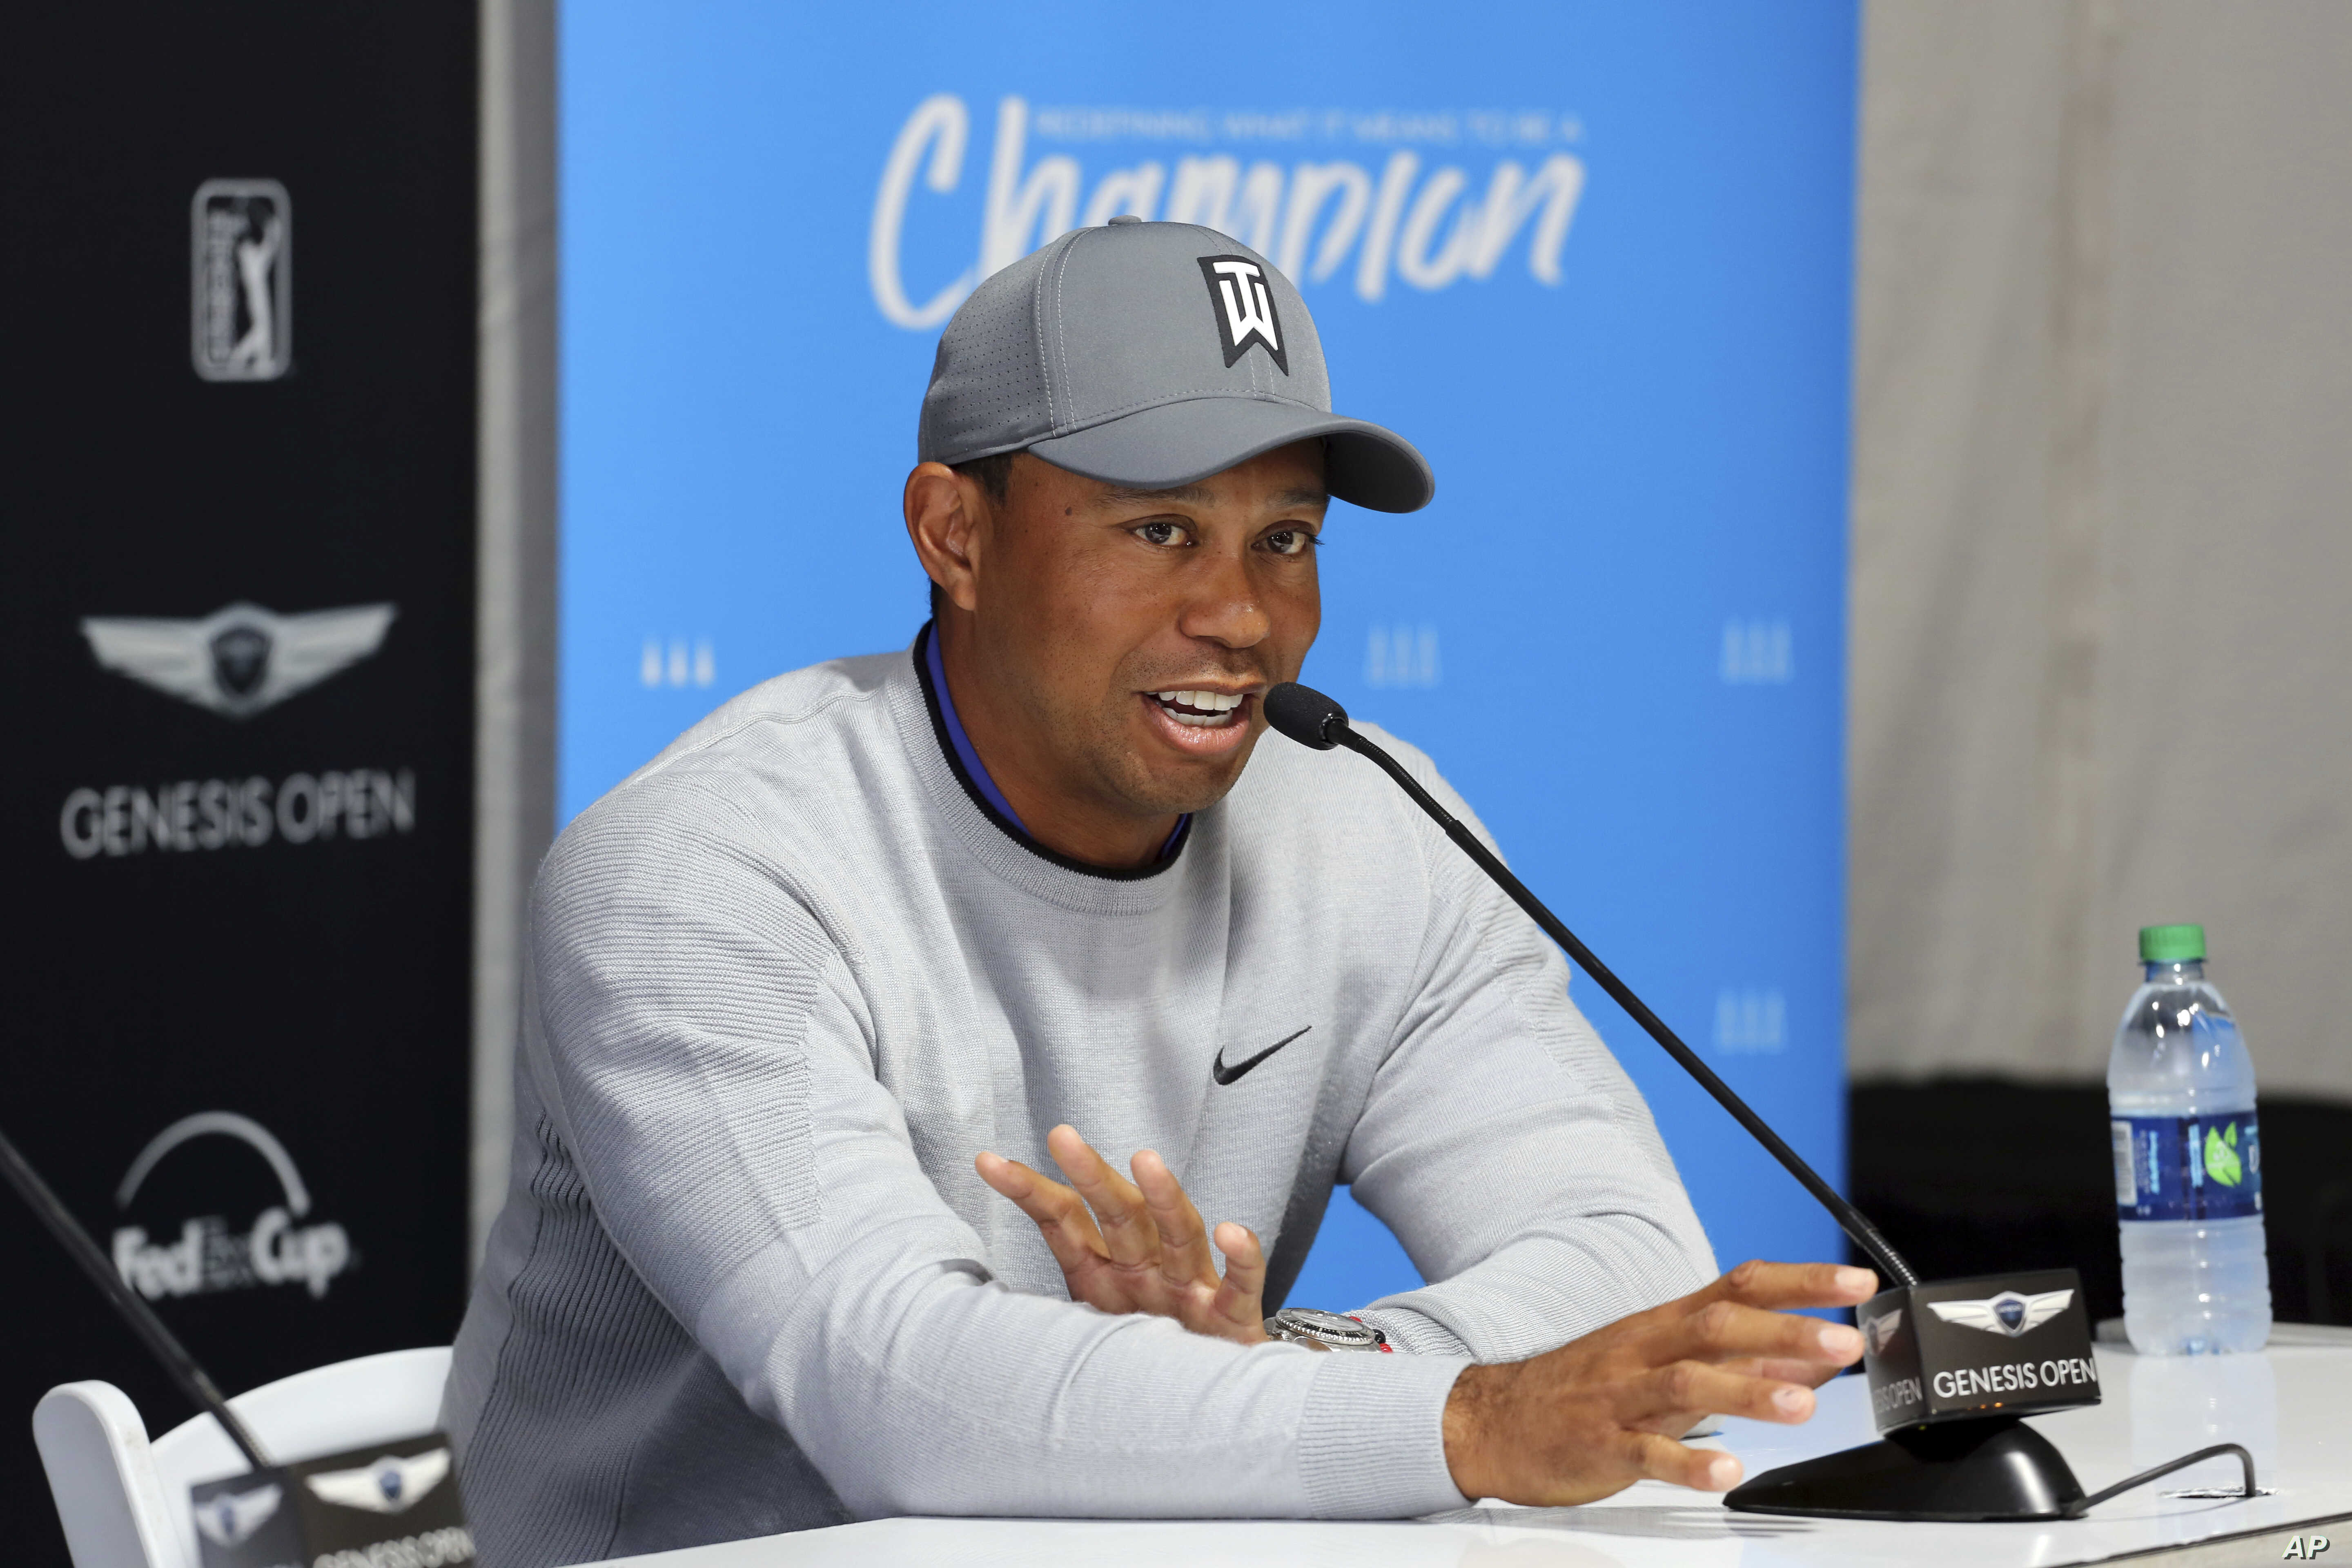 Tiger Woods talks about his charitable works off the course and his return to competitive golf in the Genesis Open at Riviera Country Club after an absence of 12 years, at the course in the Pacific Palisades area of Los Angeles, Feb. 13, 2018.